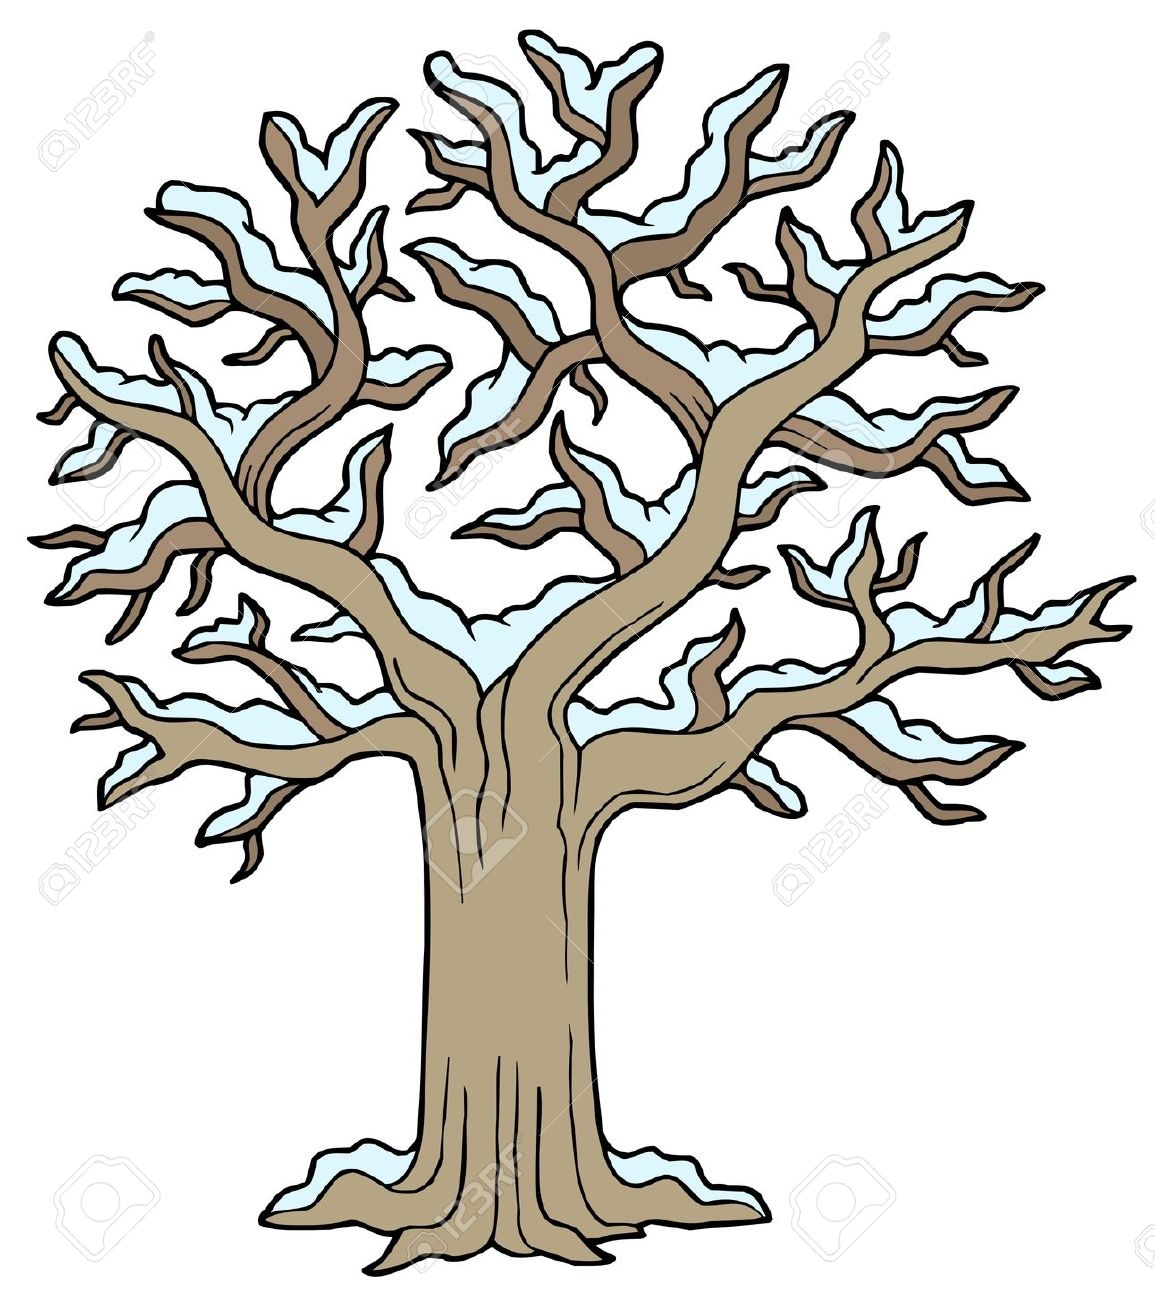 Similiar Winter Tree Cartoon Keywords.